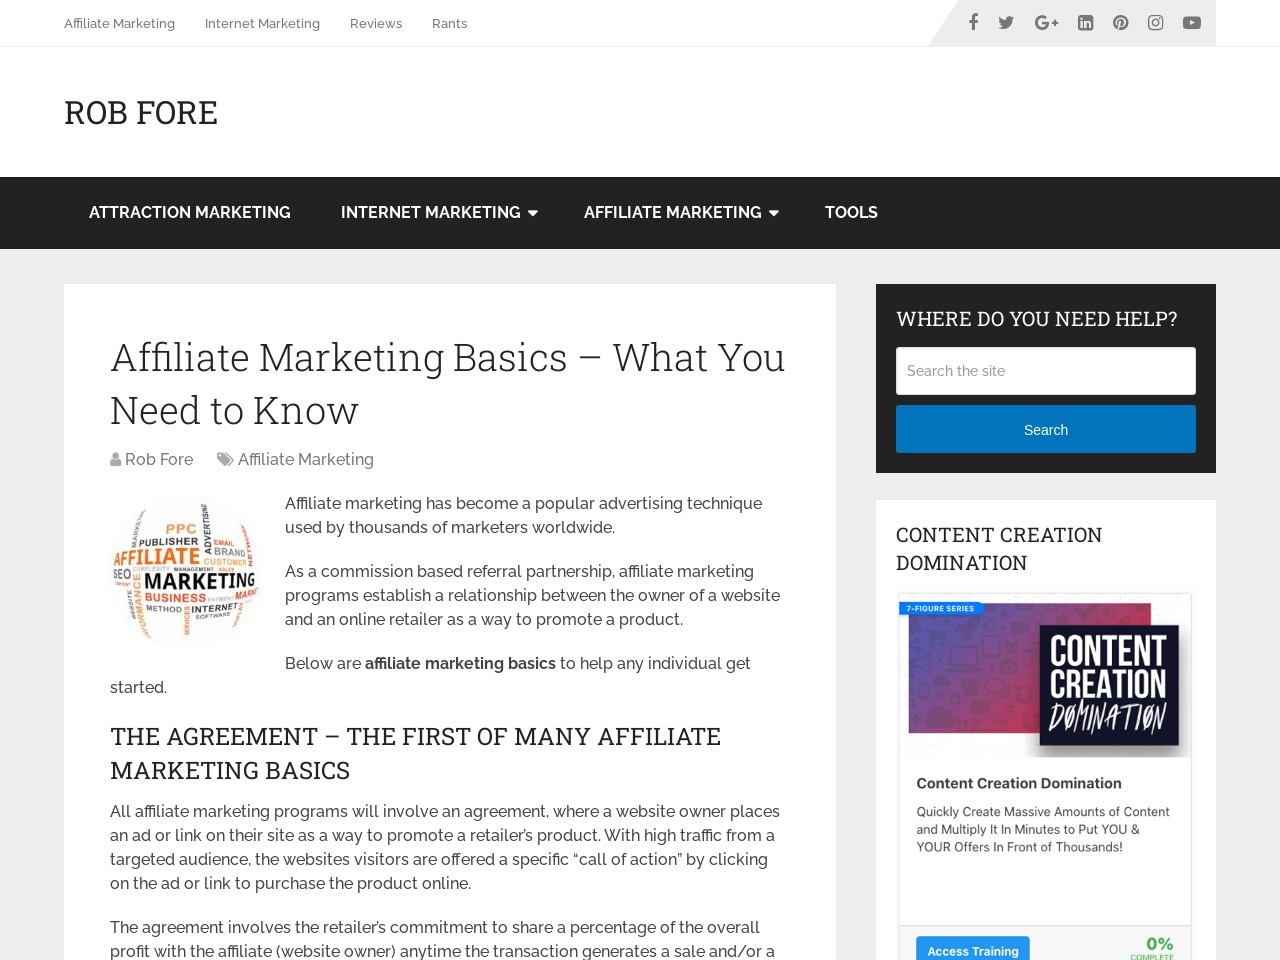 Affiliate Marketing Basics – What You Need to Know